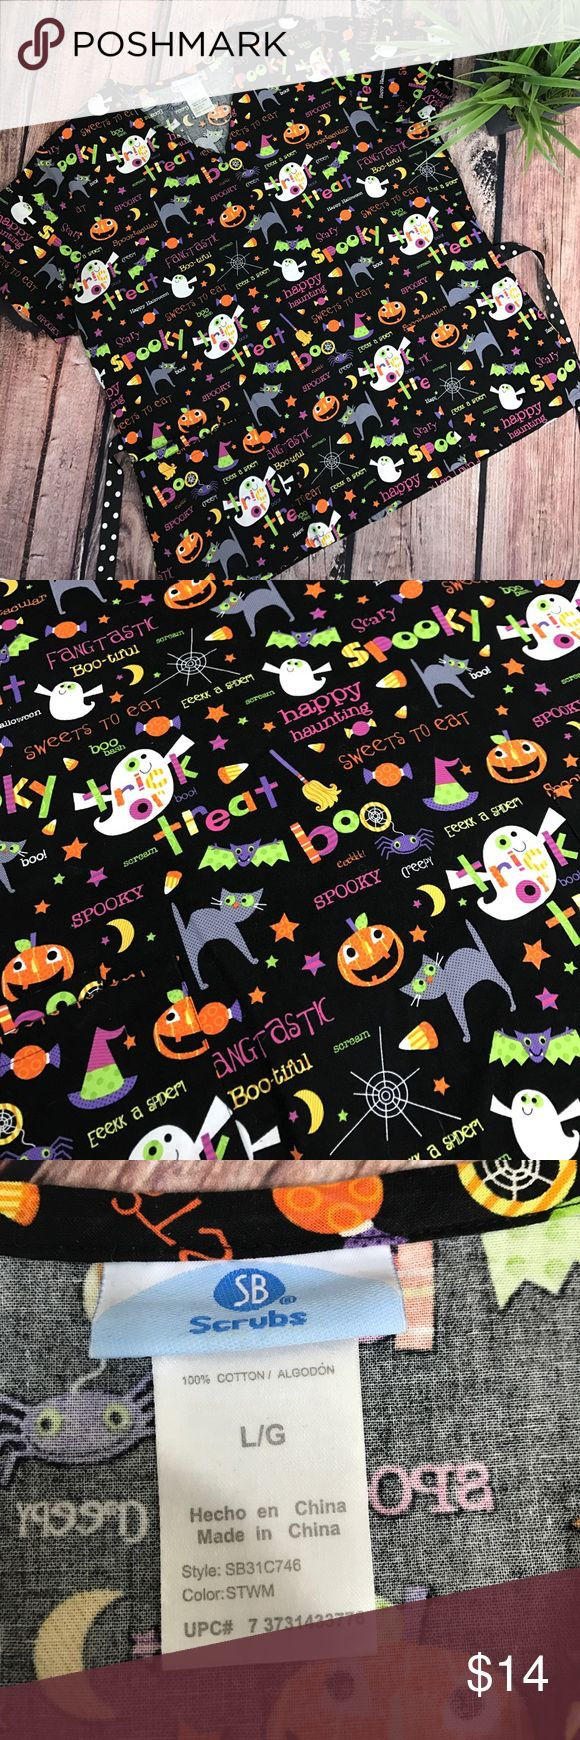 "Halloween Scrubs nursing top Adorable Halloween scrub top with front pockets and polka dot tie back. Size L 100% cotton. 27"" long 24"" across chest. Scrubs Tops"